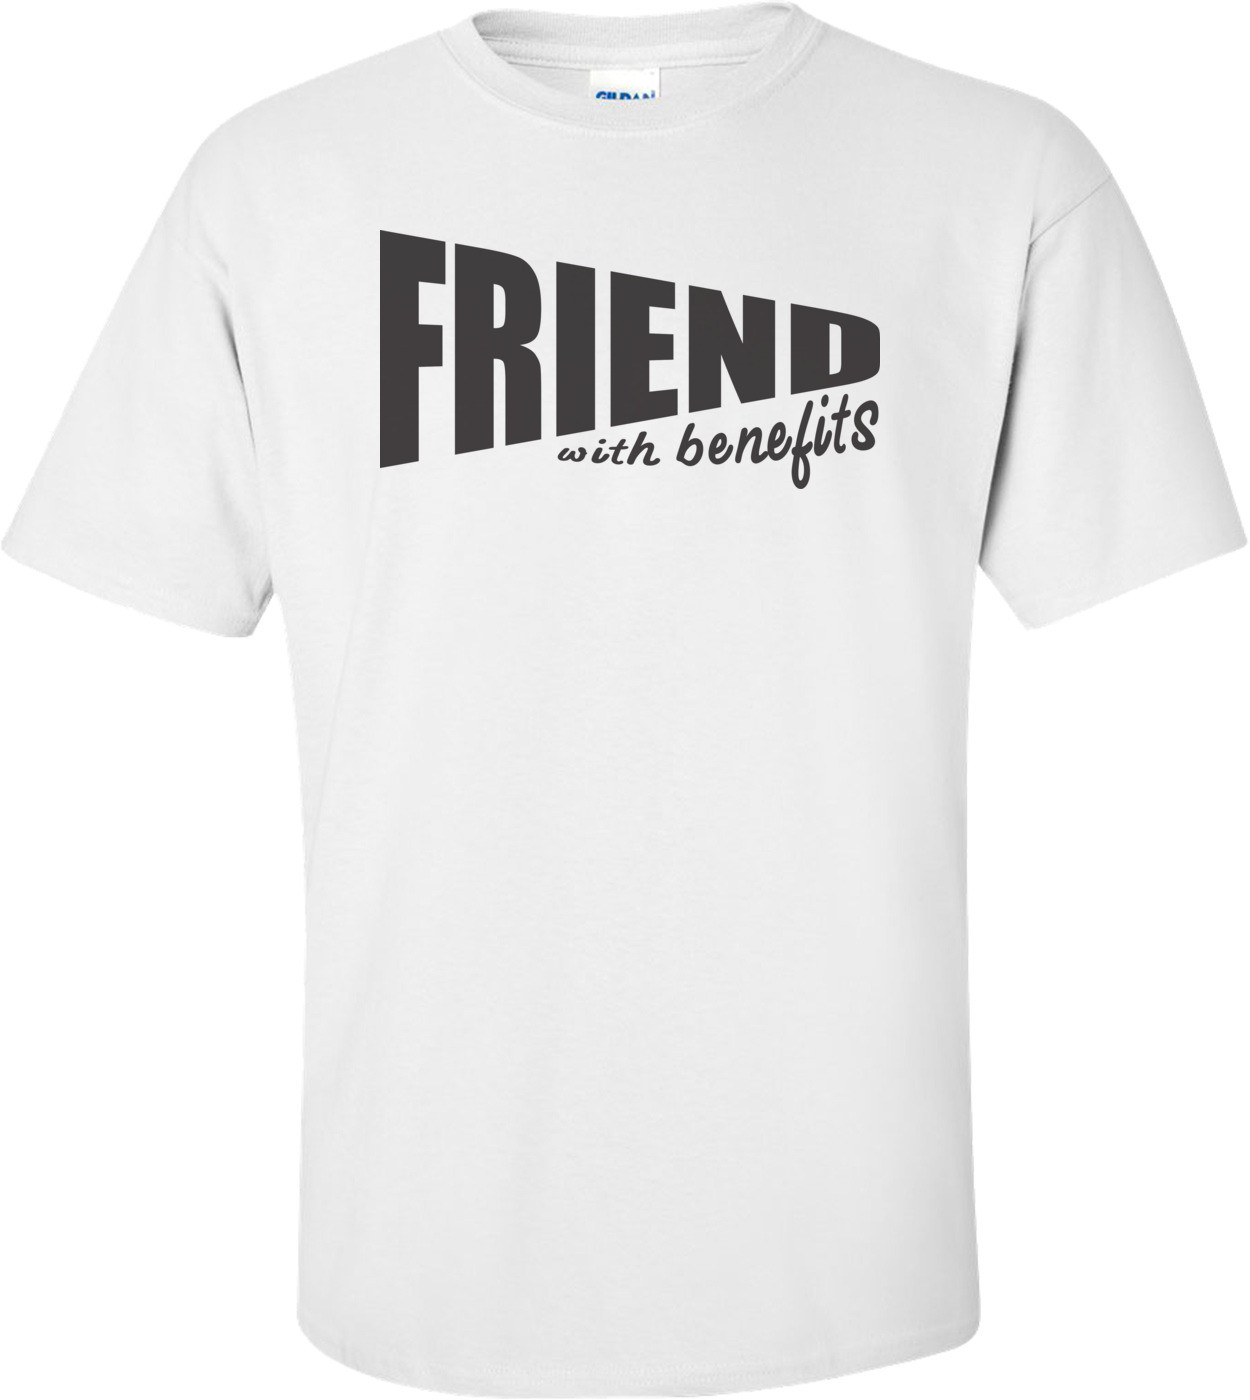 Friend With Benefits T-shirt